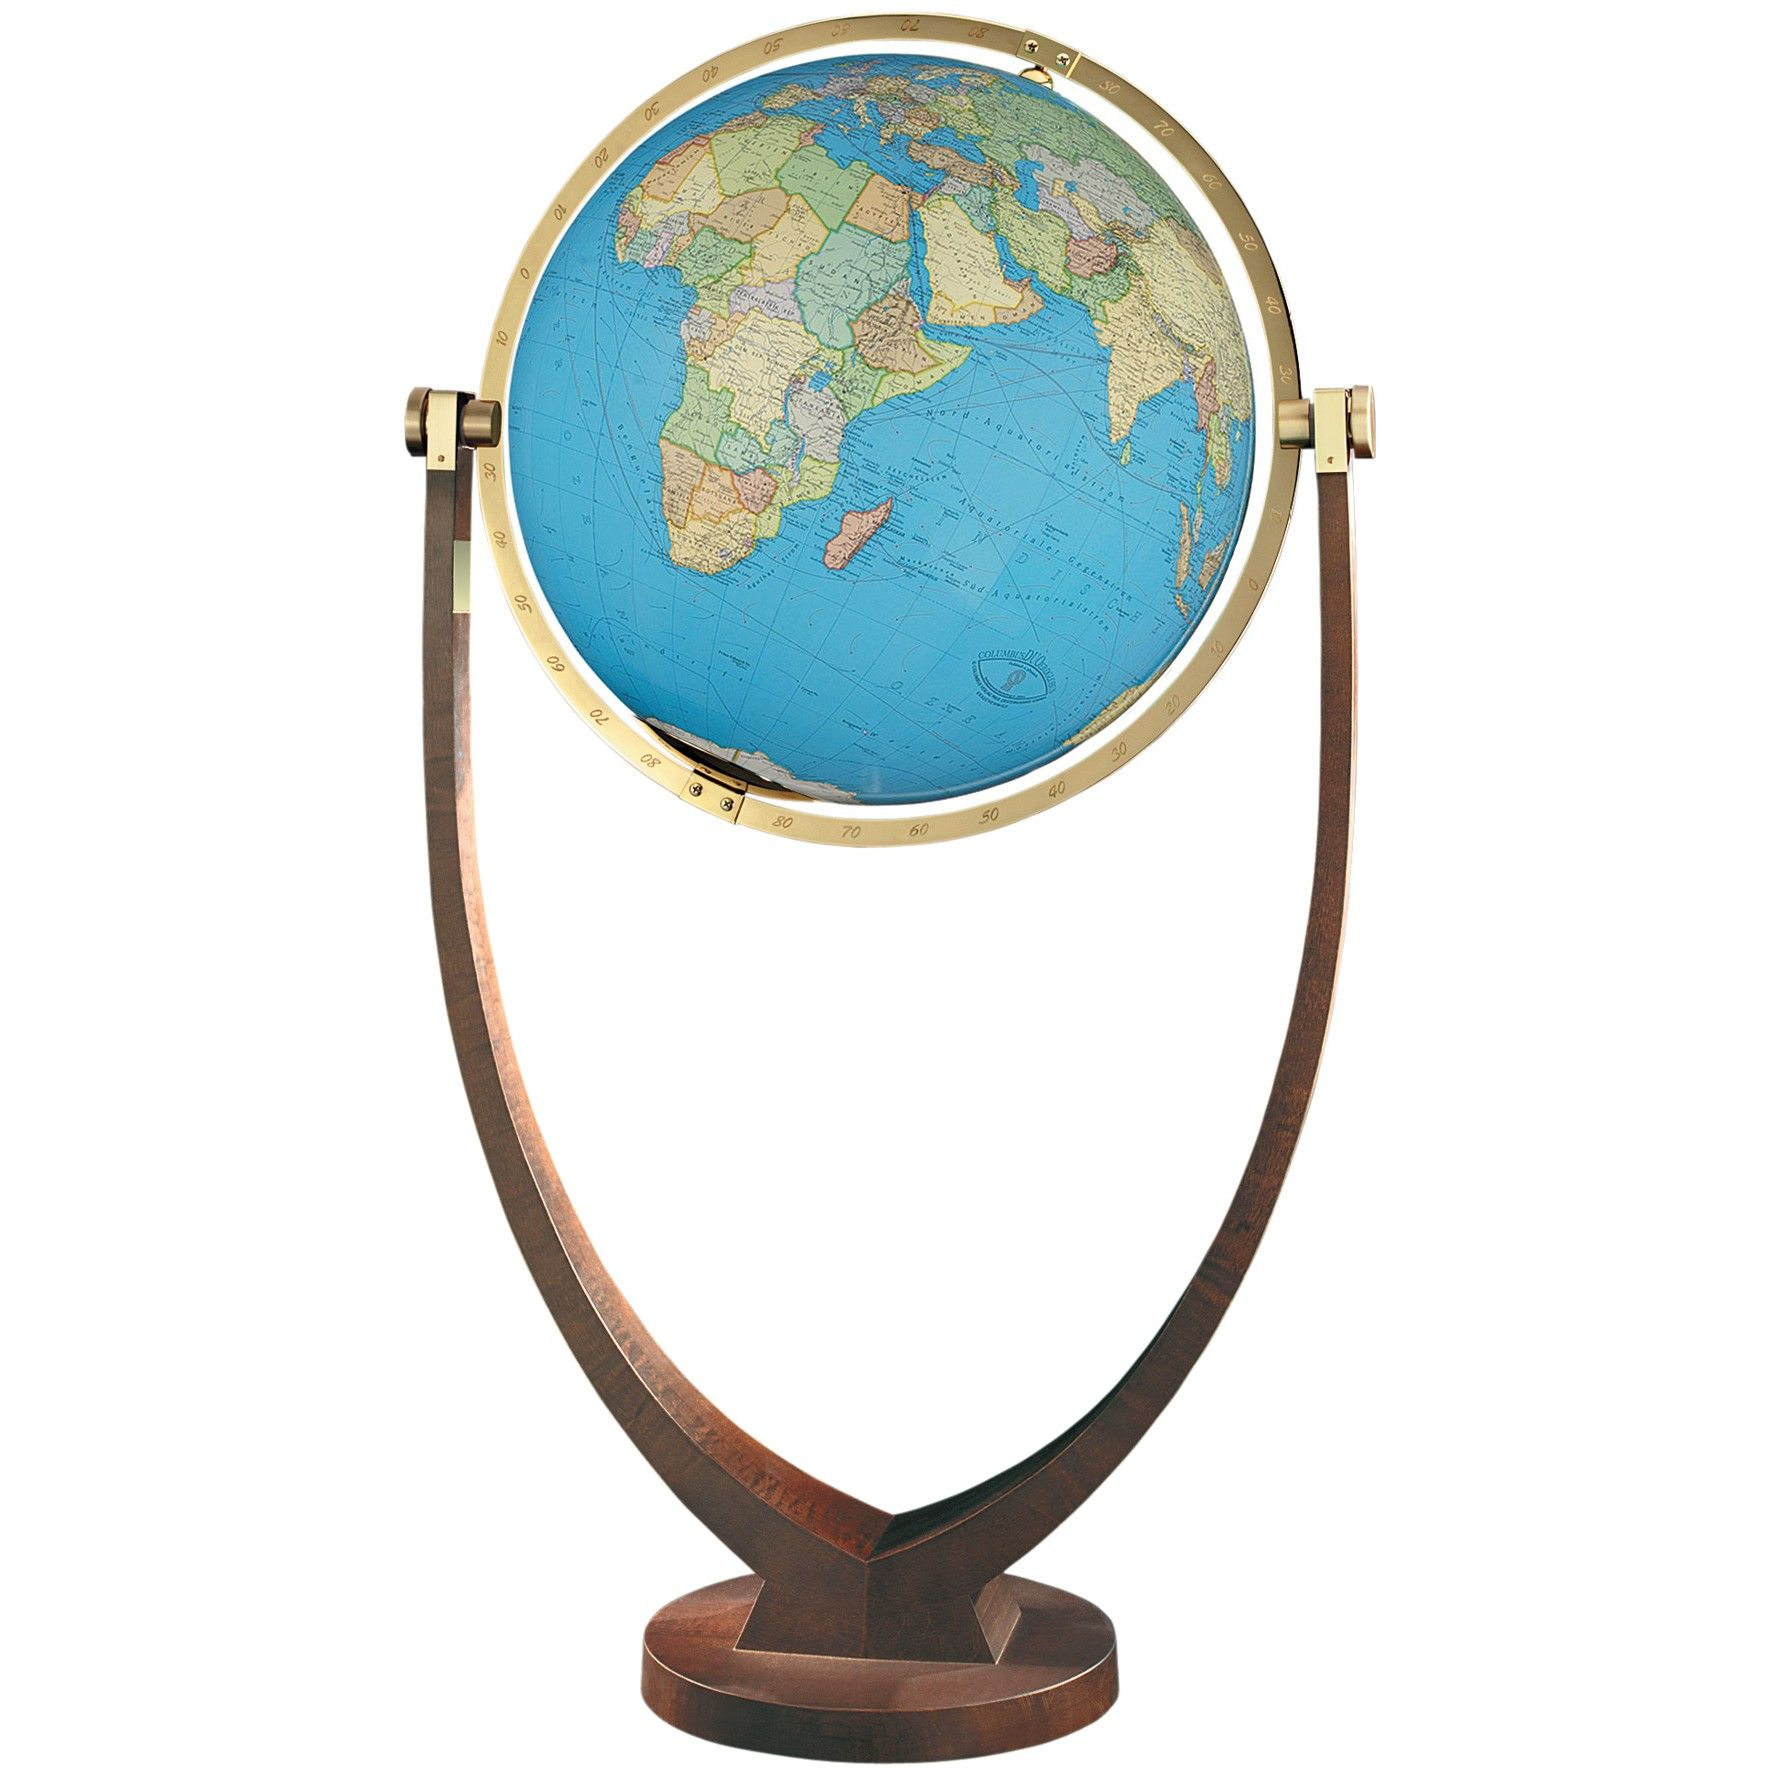 one of the most stylish models on the market the columbus osnabruck illuminated floor globe 20 inch belongs in a home